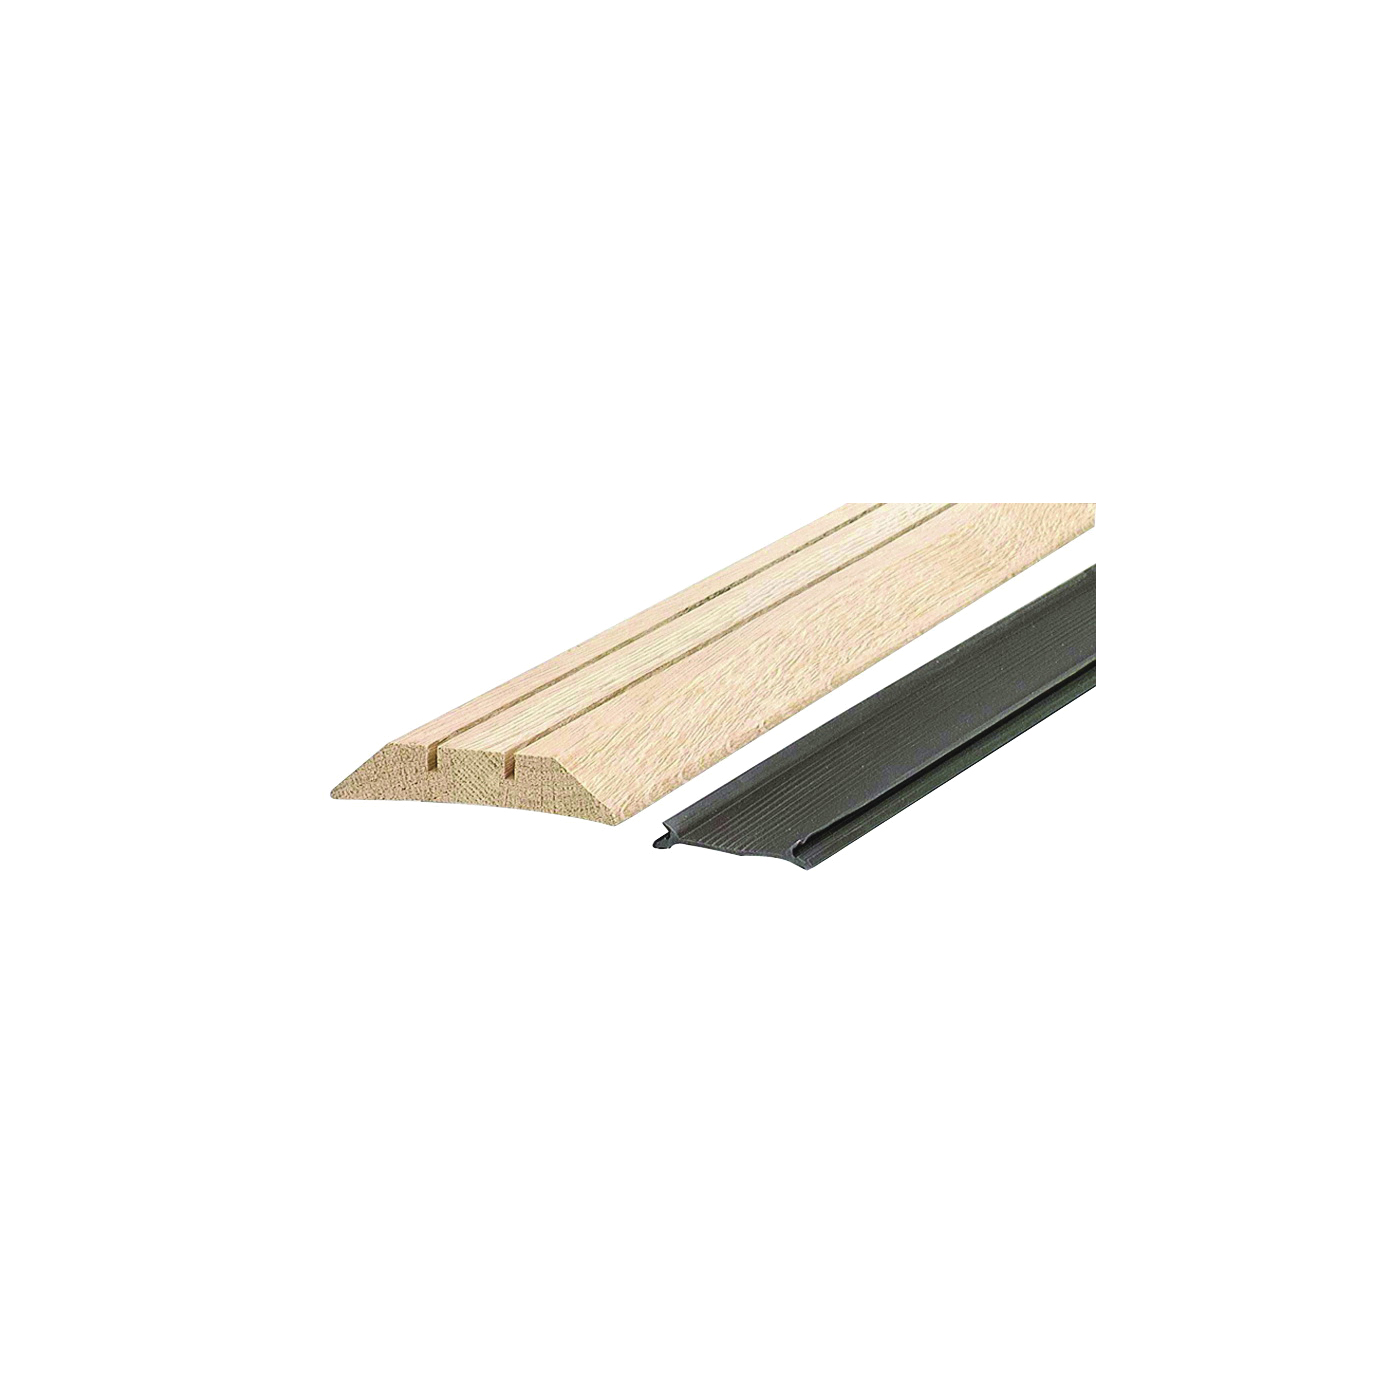 Picture of M-D 11783 Threshold with Seal, 36 in L, 3-1/2 in W, Hardwood, Unfinished